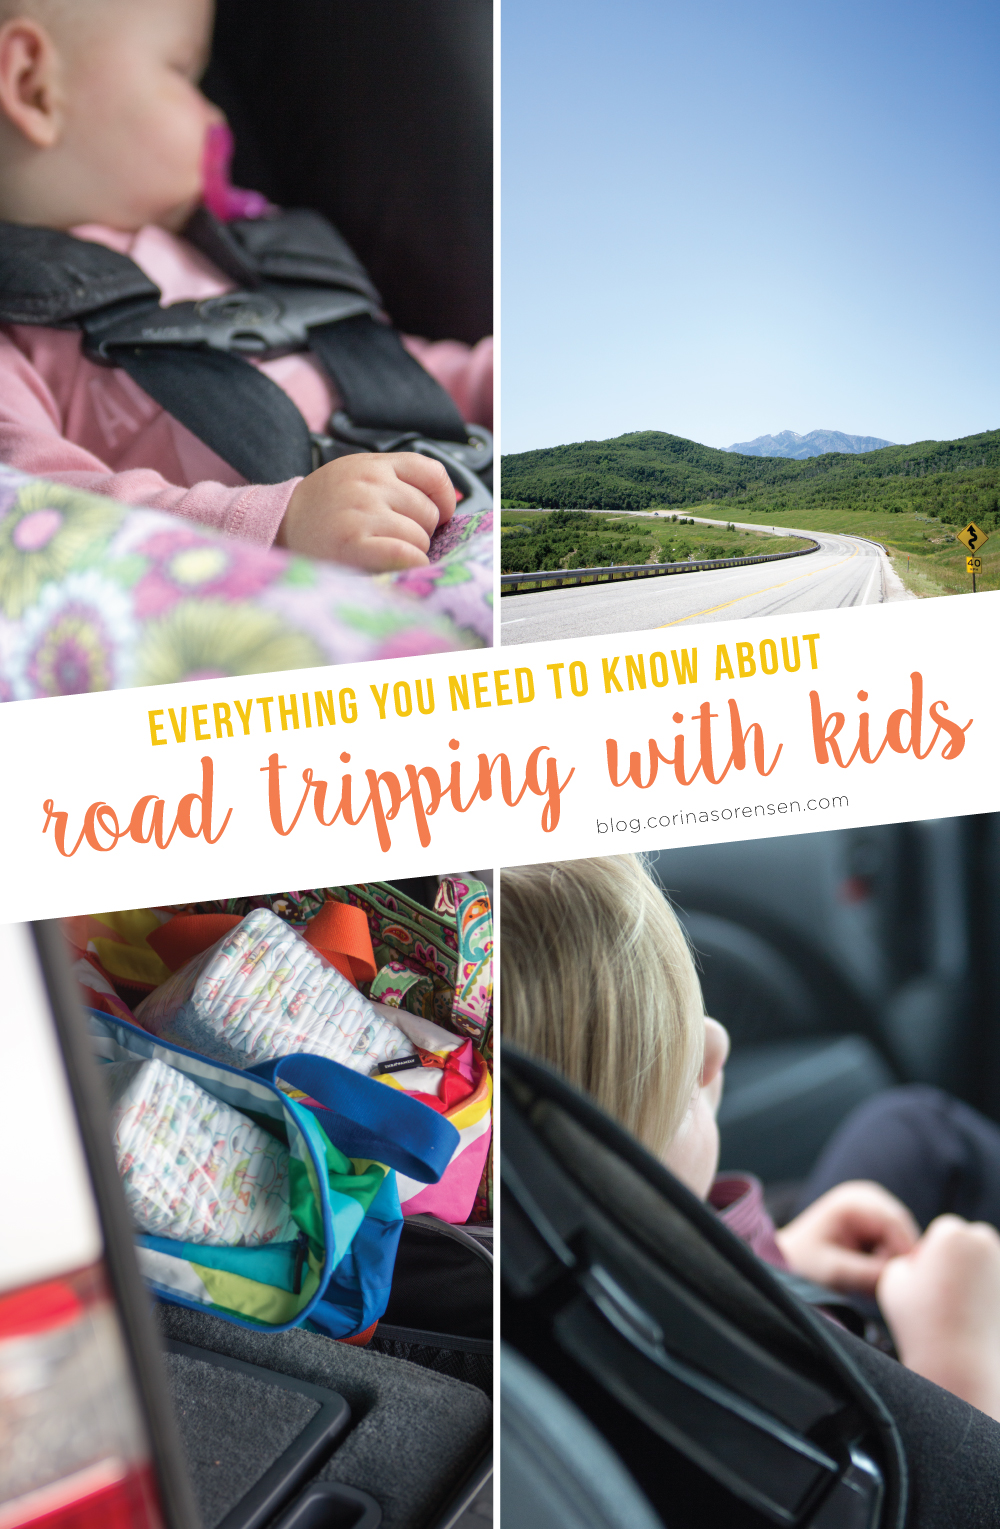 Everything you need to know about road tripping with kids